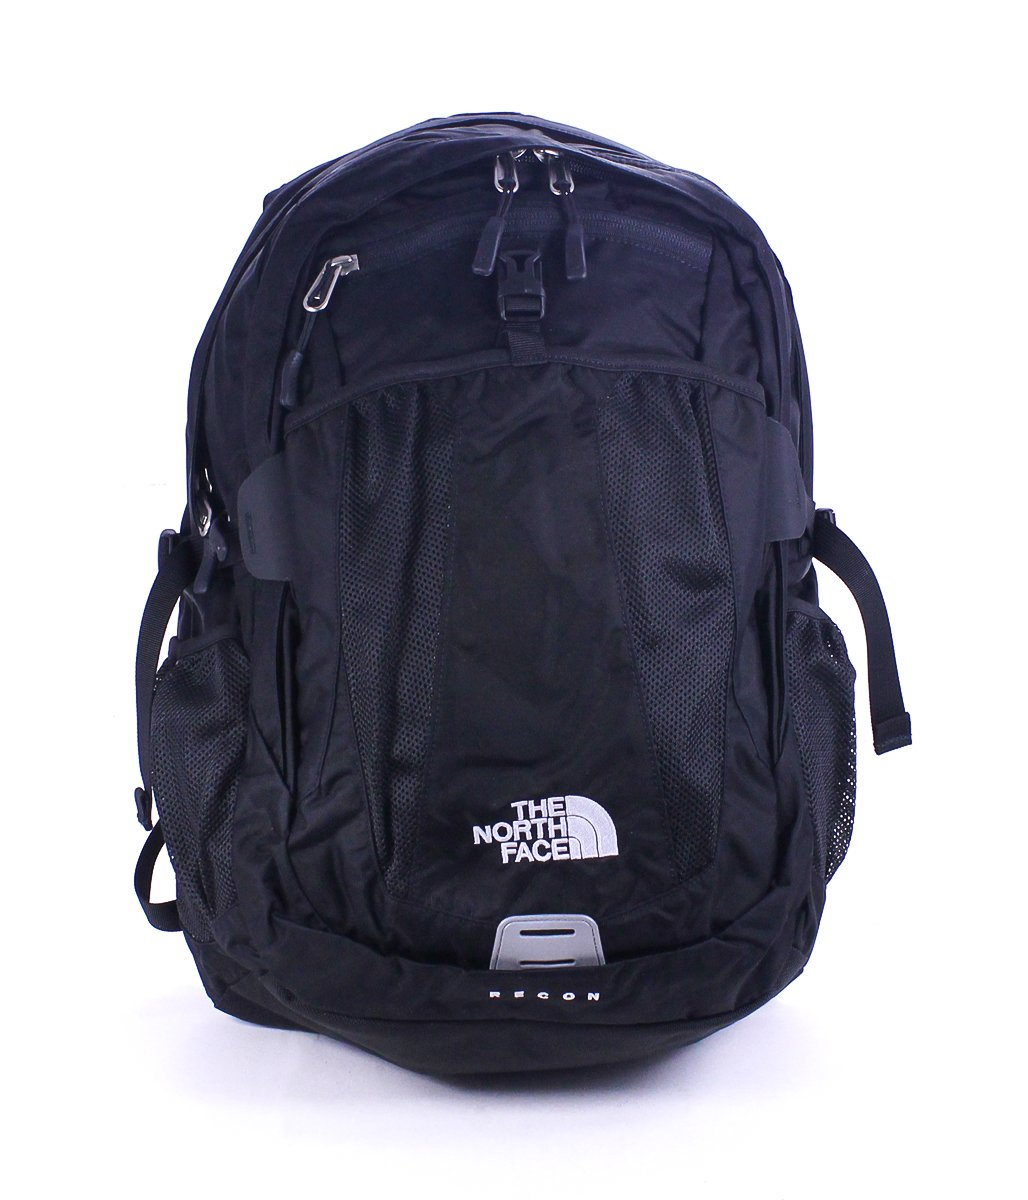 Amazon.com  The North Face MENS Recon laptop backpack book bag 19X15X4 TNF  BLACK  Sports   Outdoors 336705c86901